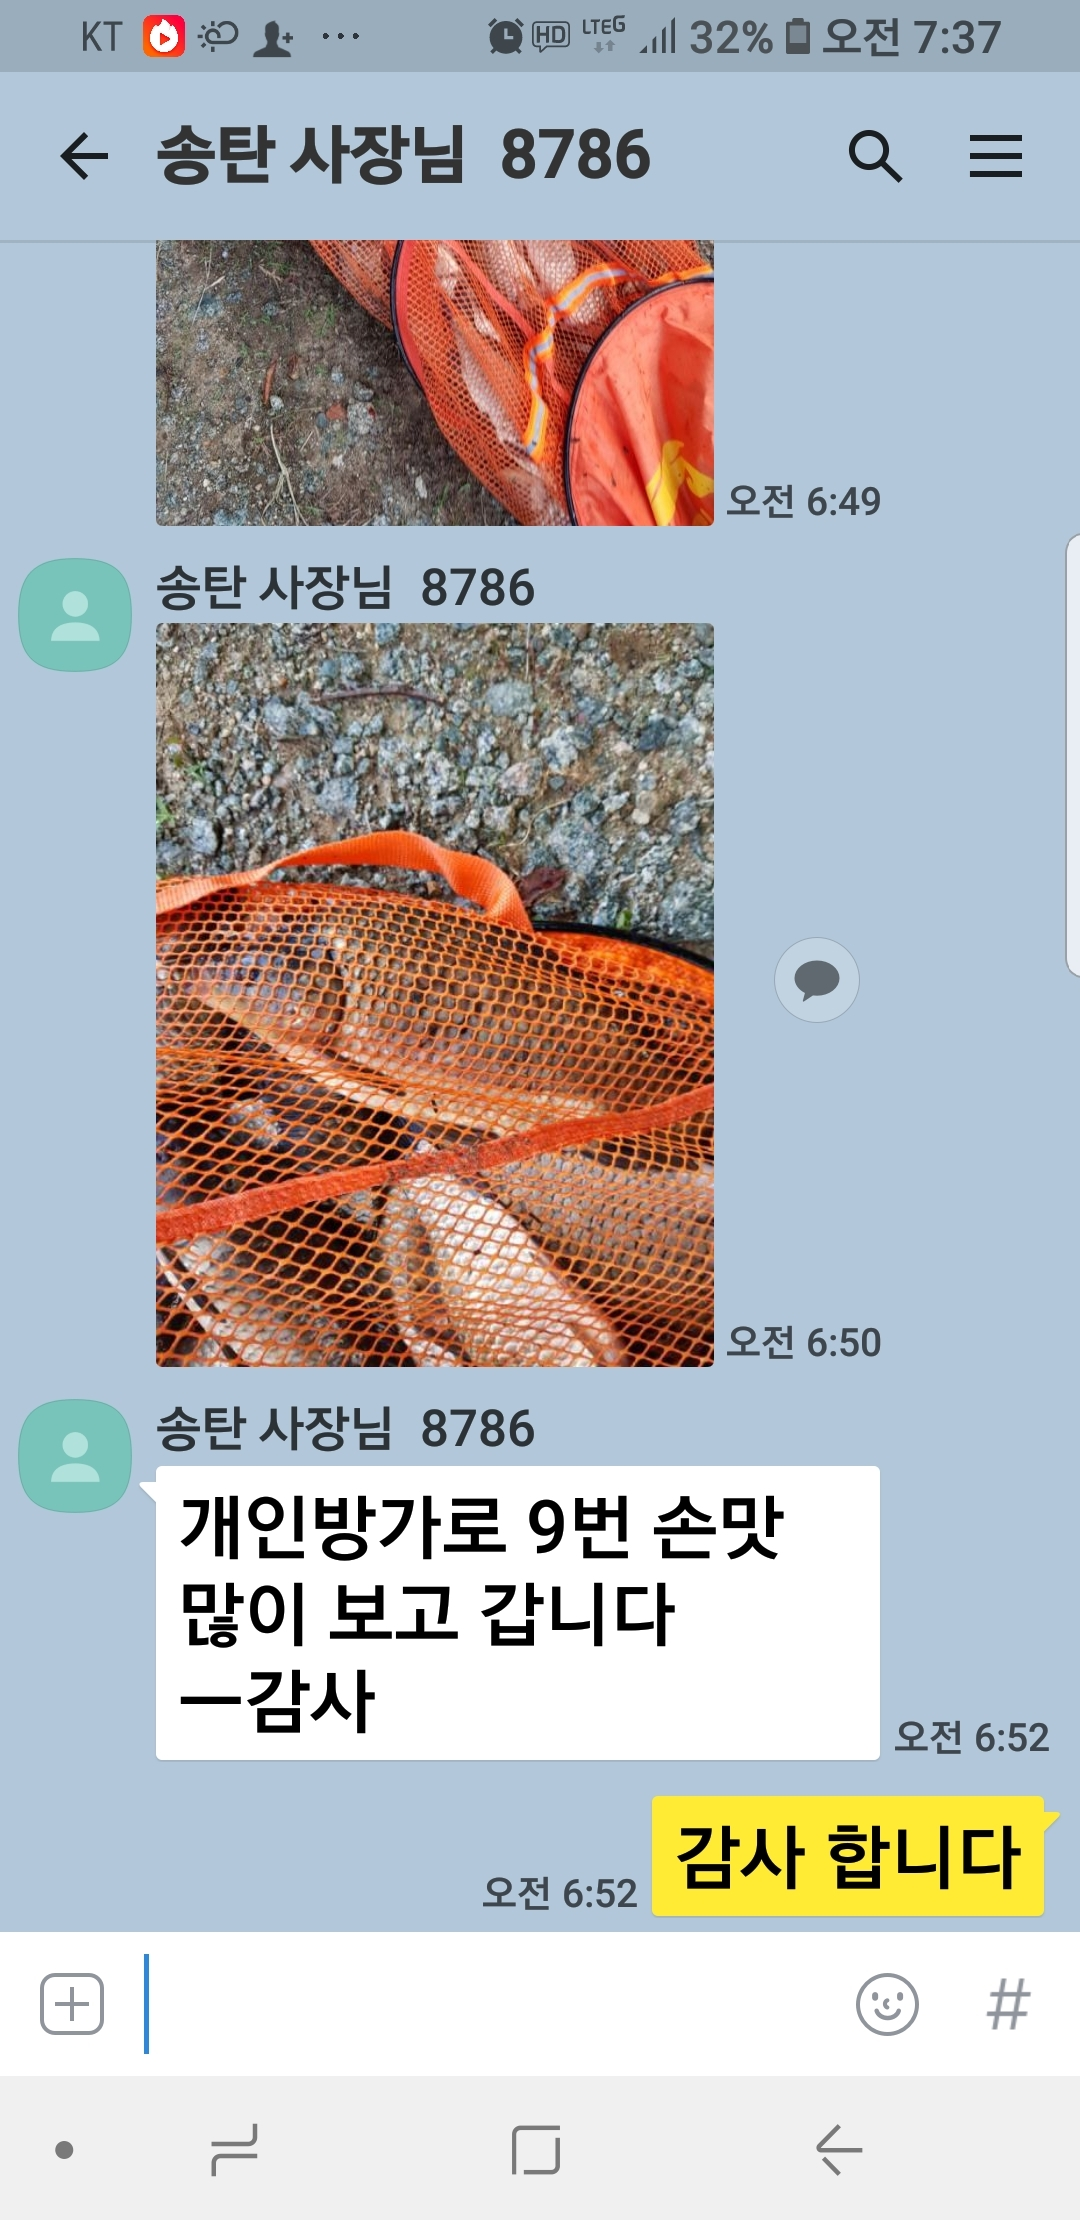 Screenshot_20180912-073727_KakaoTalk.jpg